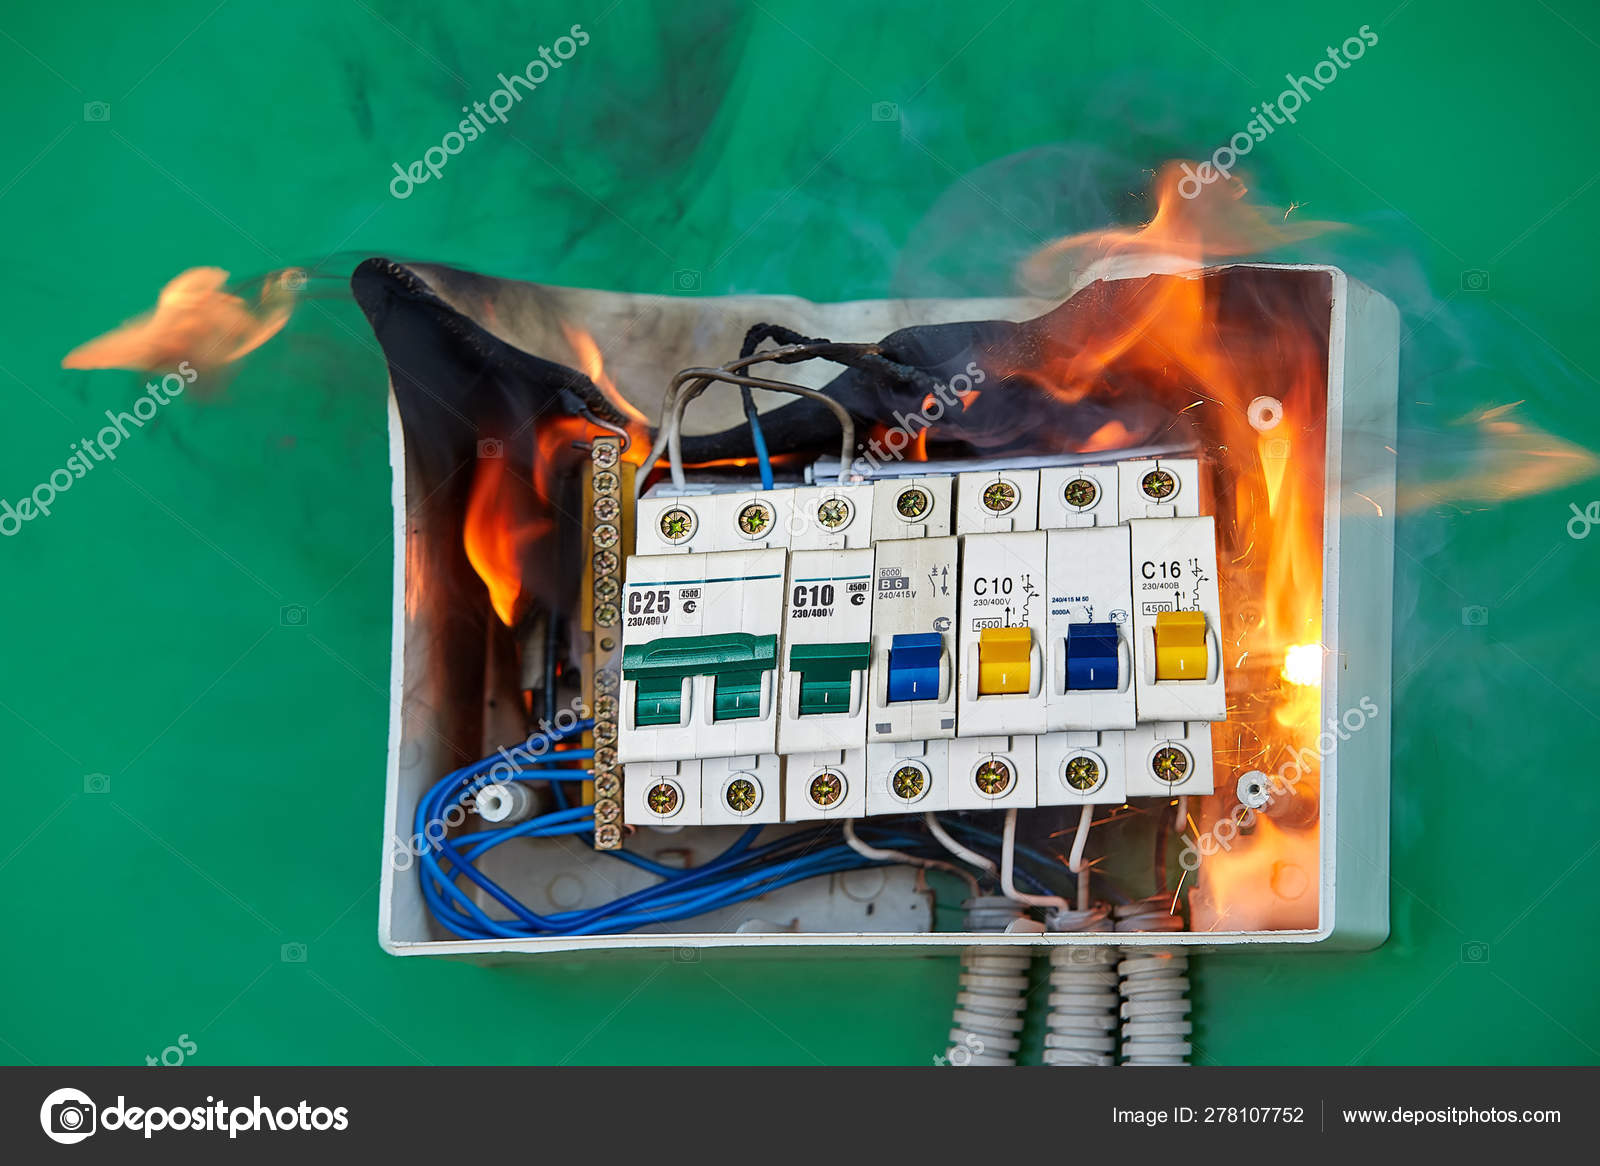 home fuse box wiring bad electrical wiring caused fire in fuse box     stock photo  bad electrical wiring caused fire in